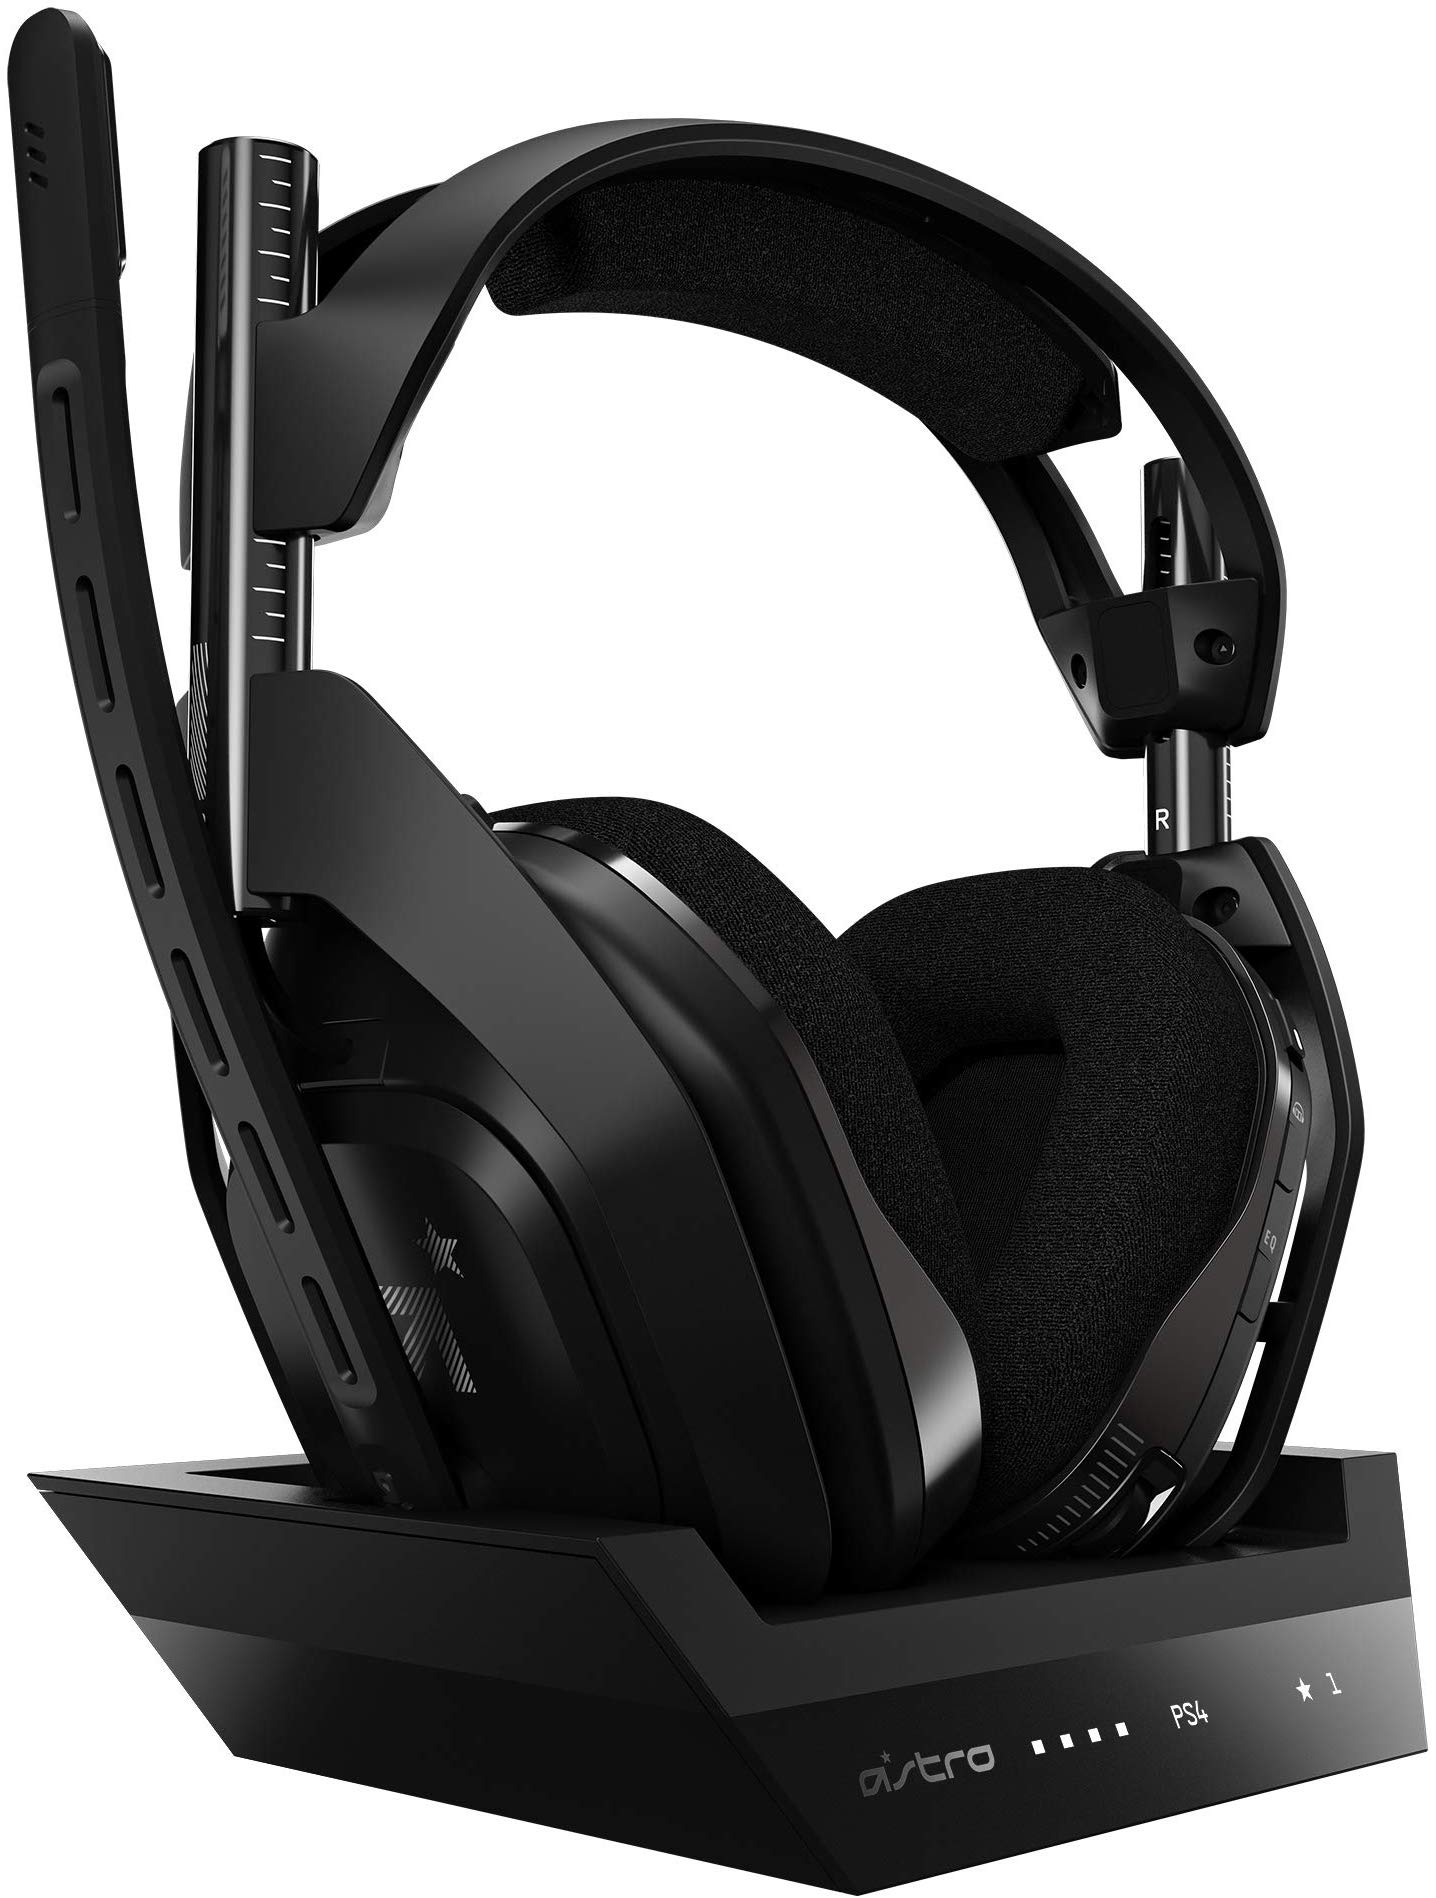 The Best 7.1 Gaming Headsets (Reviewed December 2019) 3